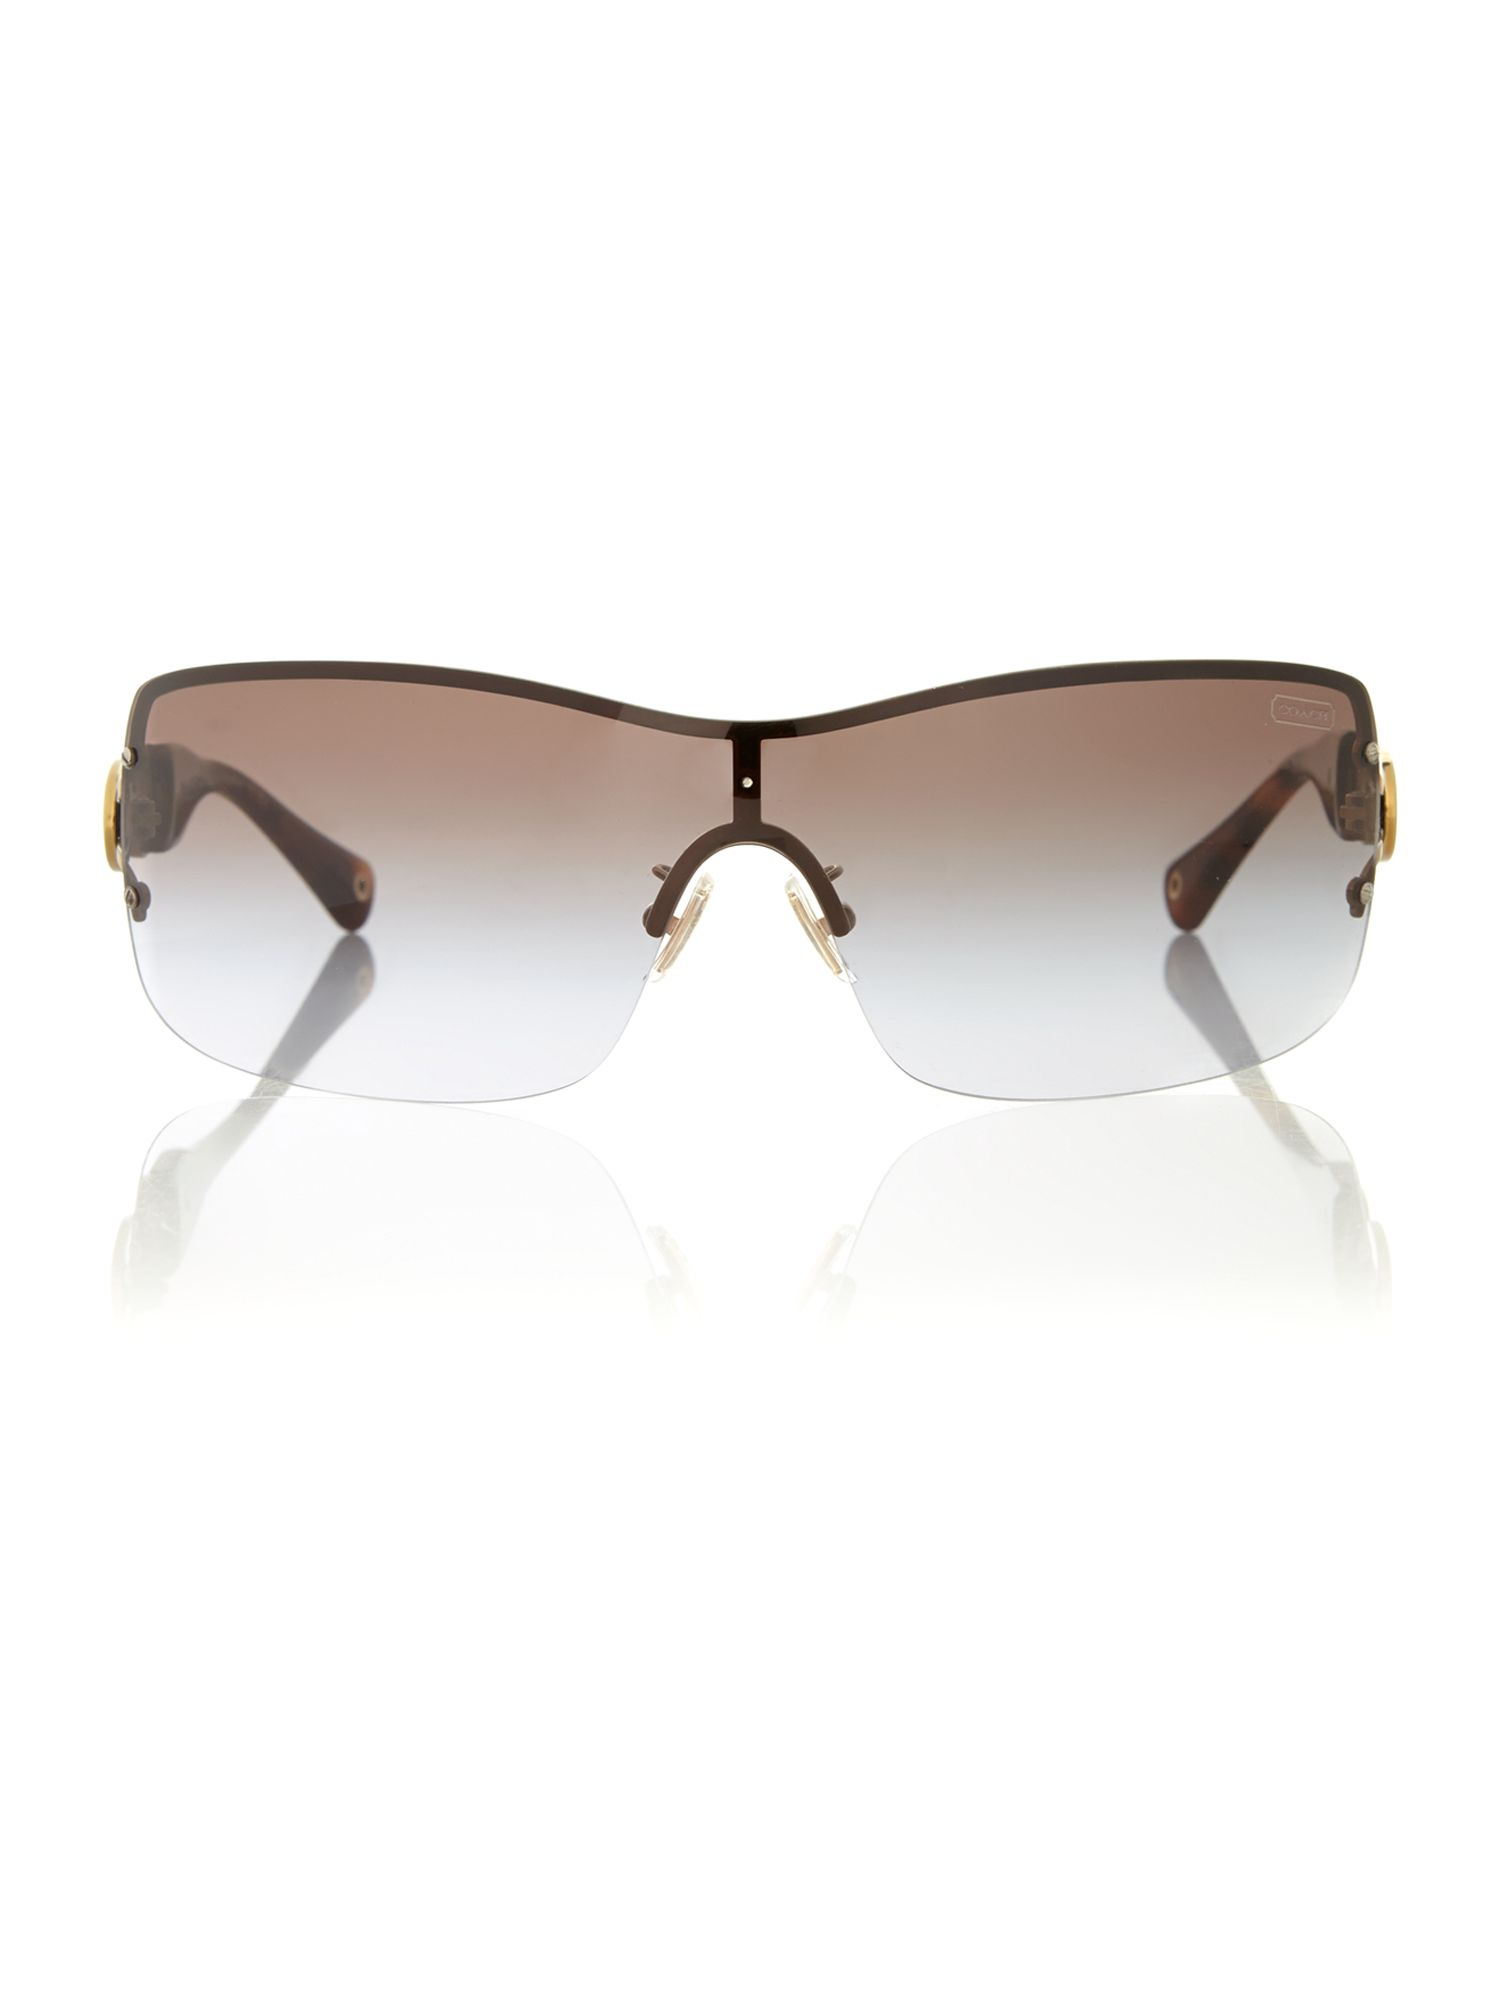 Ladies noelle gold/tortoise brown sunglasses